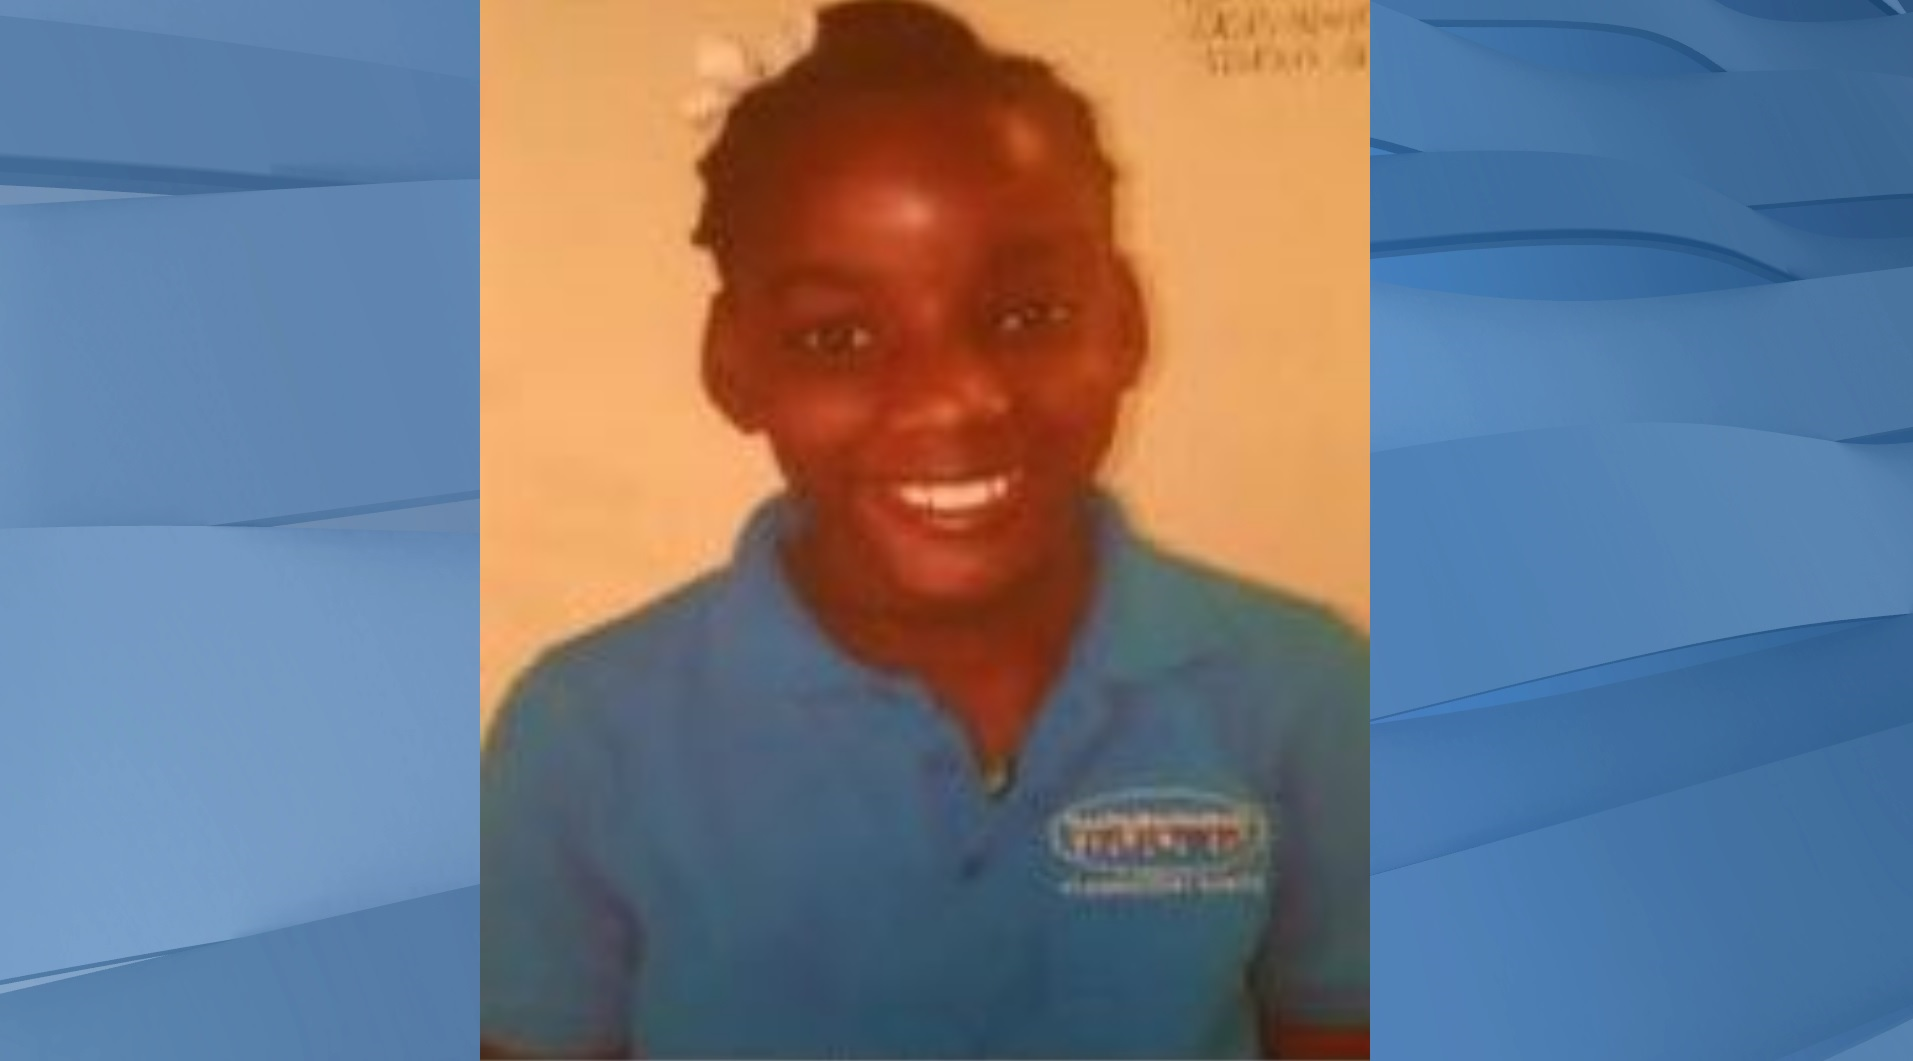 Amber Alert issued for Broward County 9-year-old